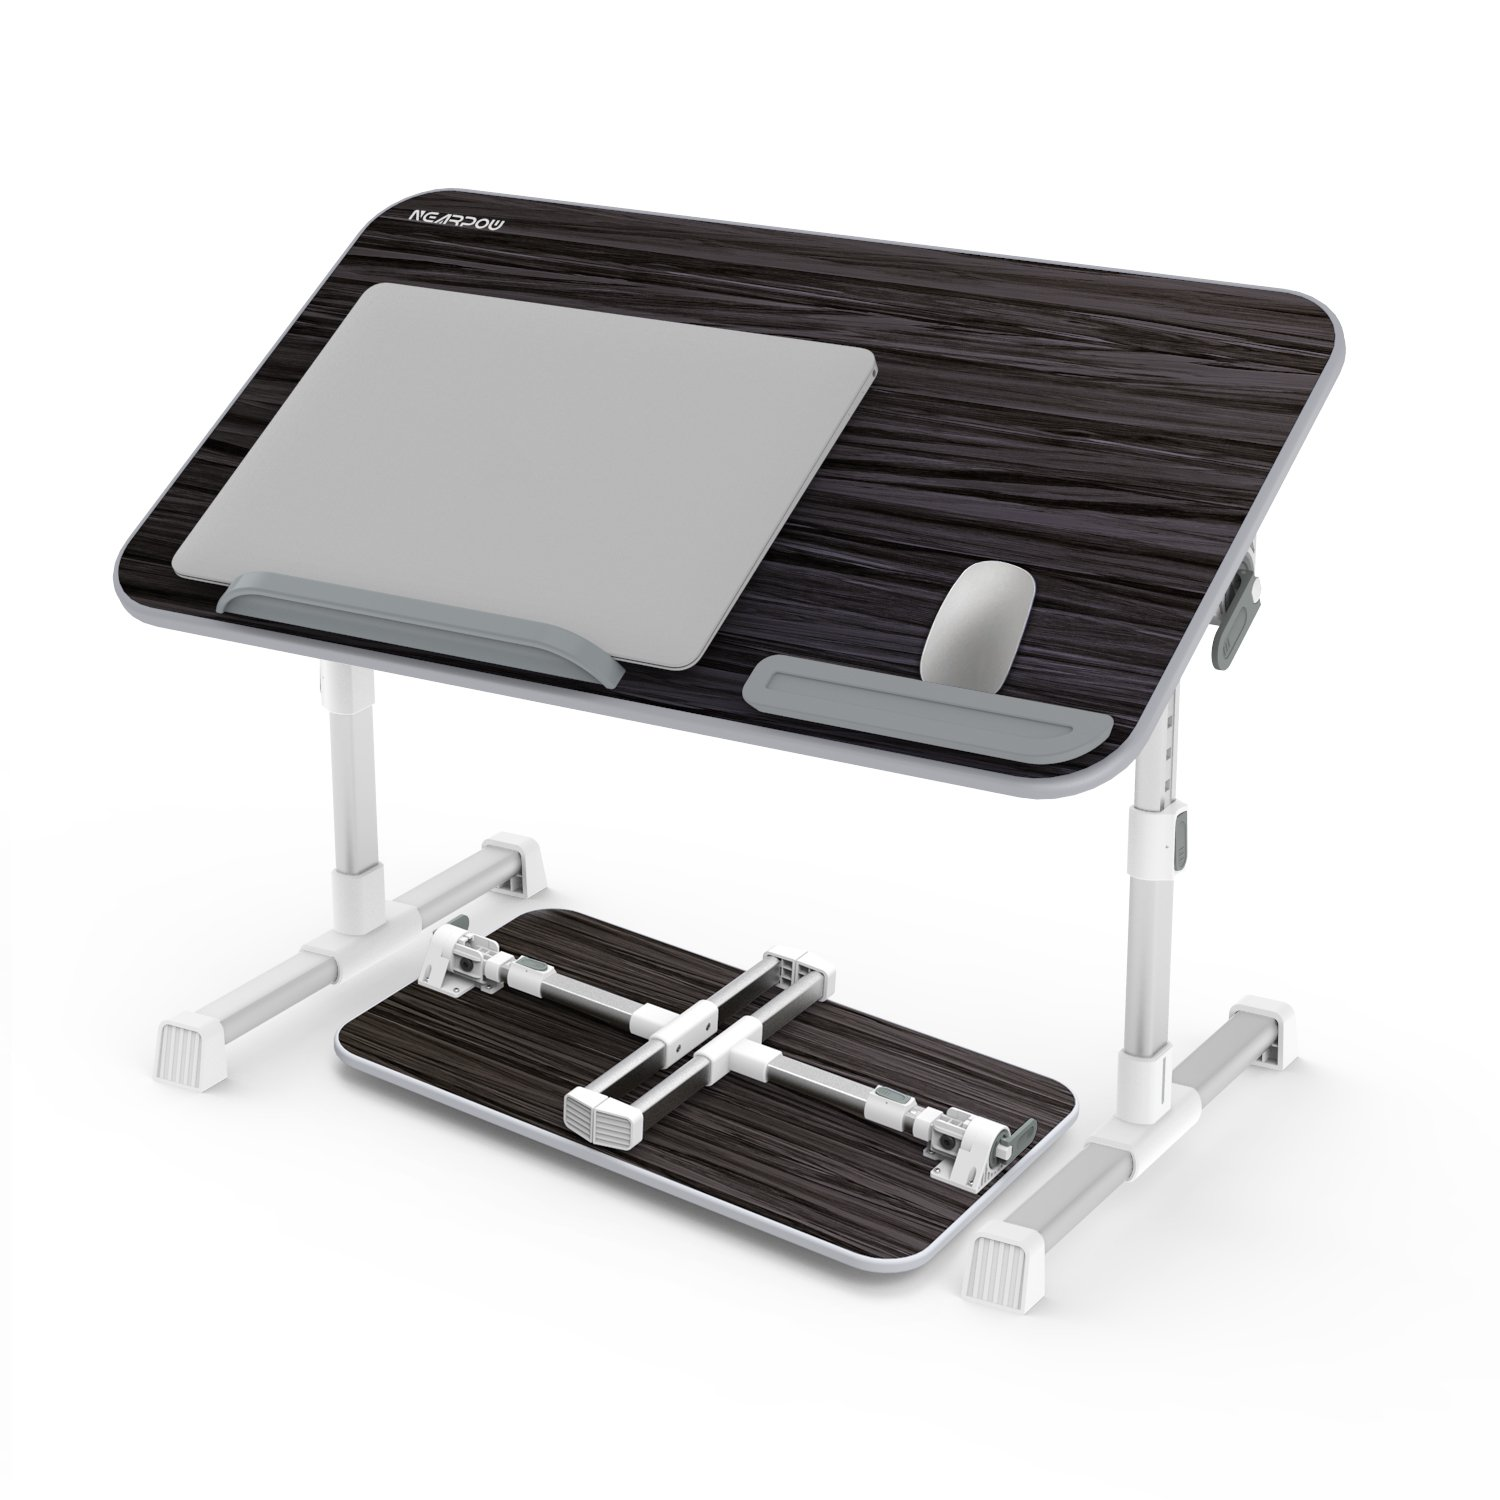 Amazon.com : Laptop Bed Tray Table, Nearpow Adjustable Laptop Bed Stand,  Portable Standing Table with Foldable Legs, Foldable Lap Tablet Table for  Sofa ...